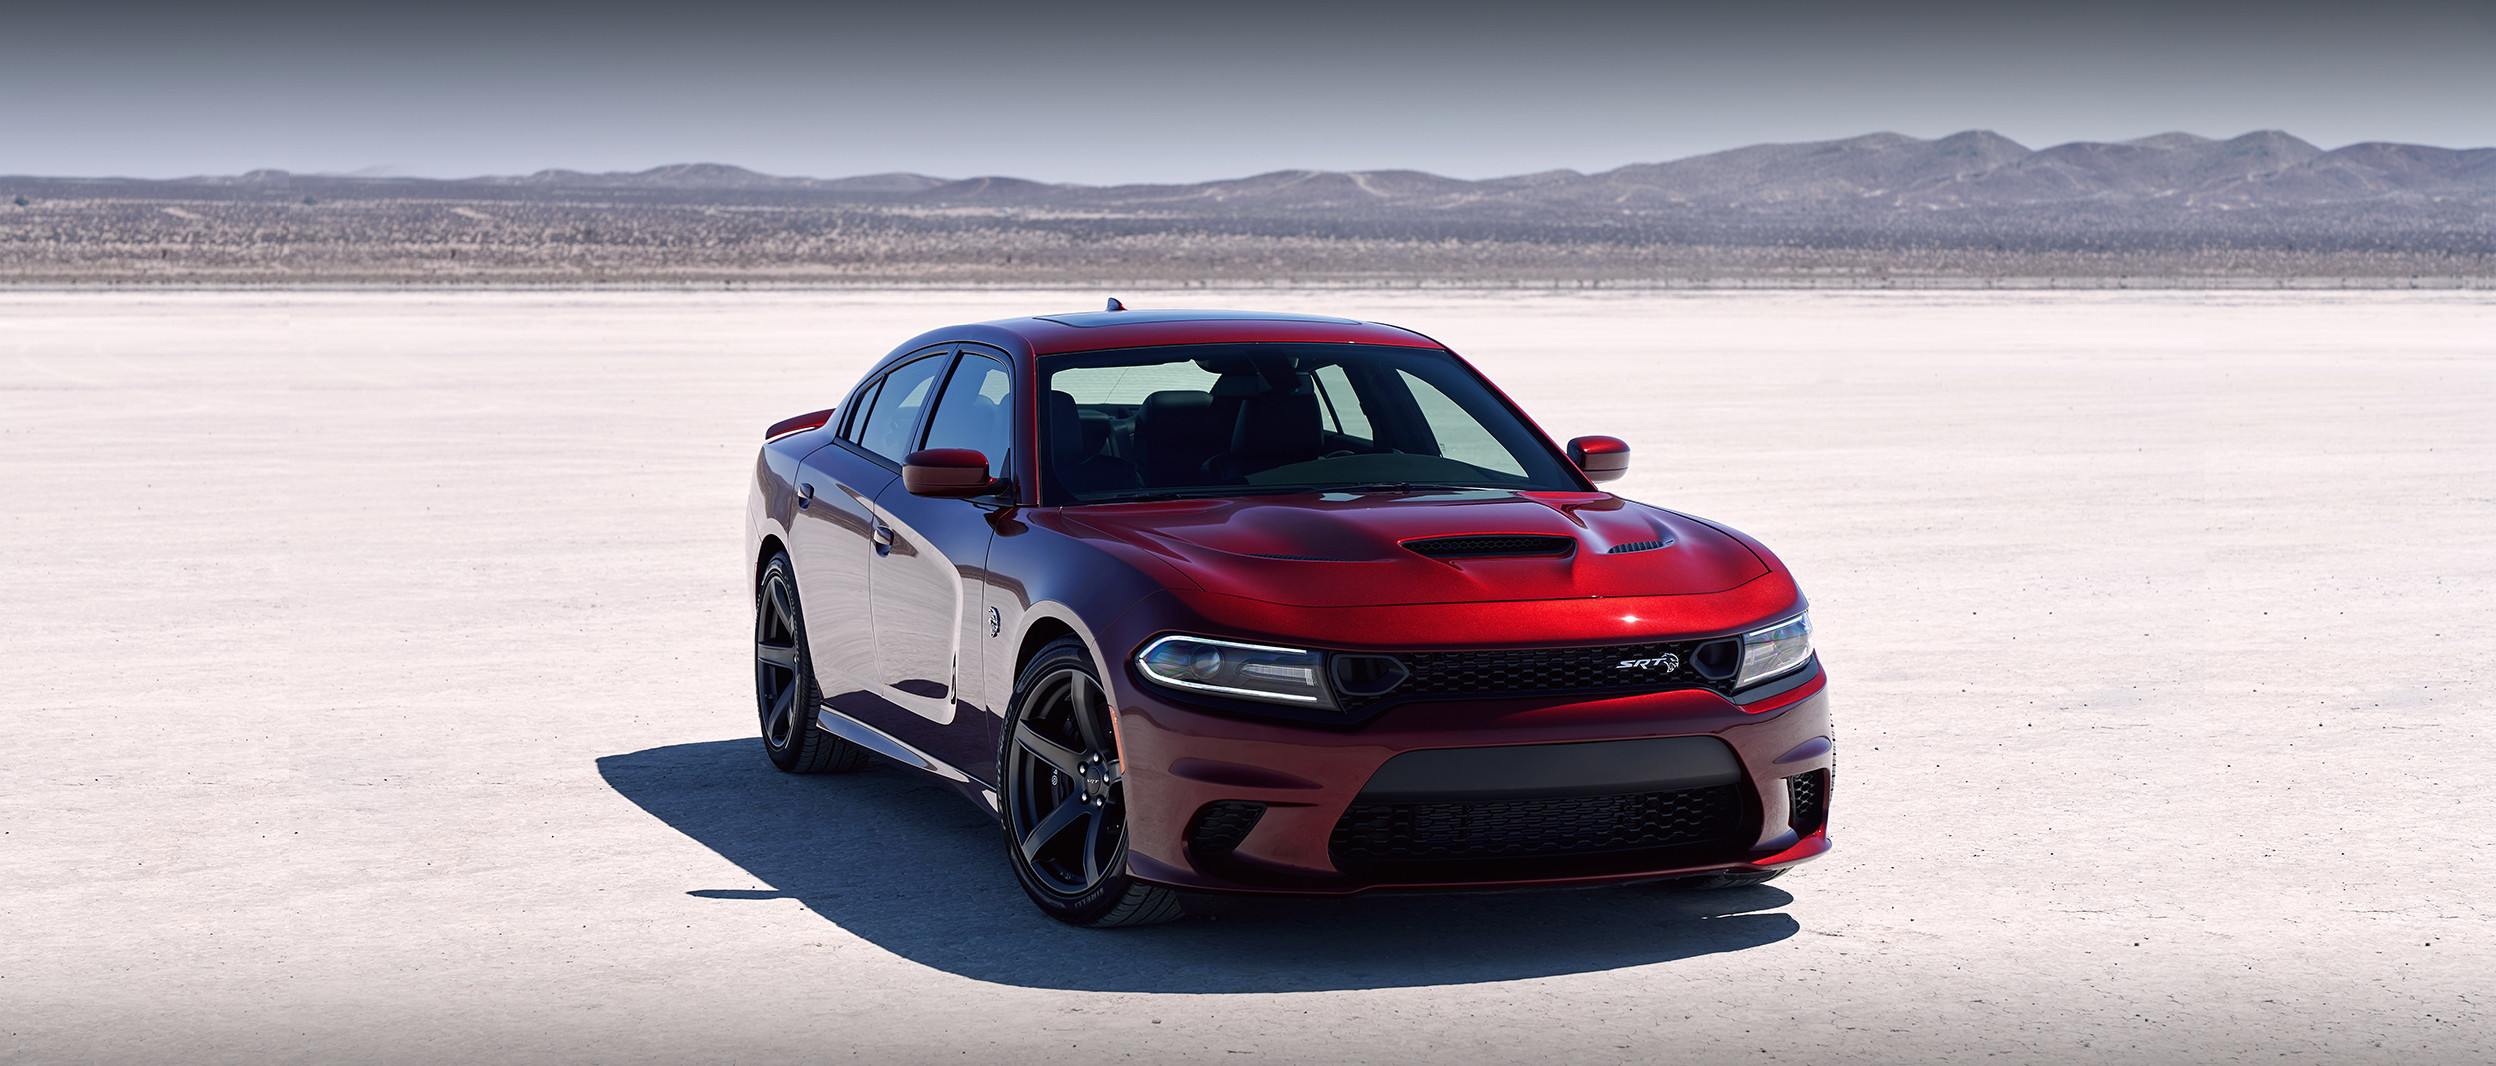 Red Dodge Charger Parked in the Middle of the Desert